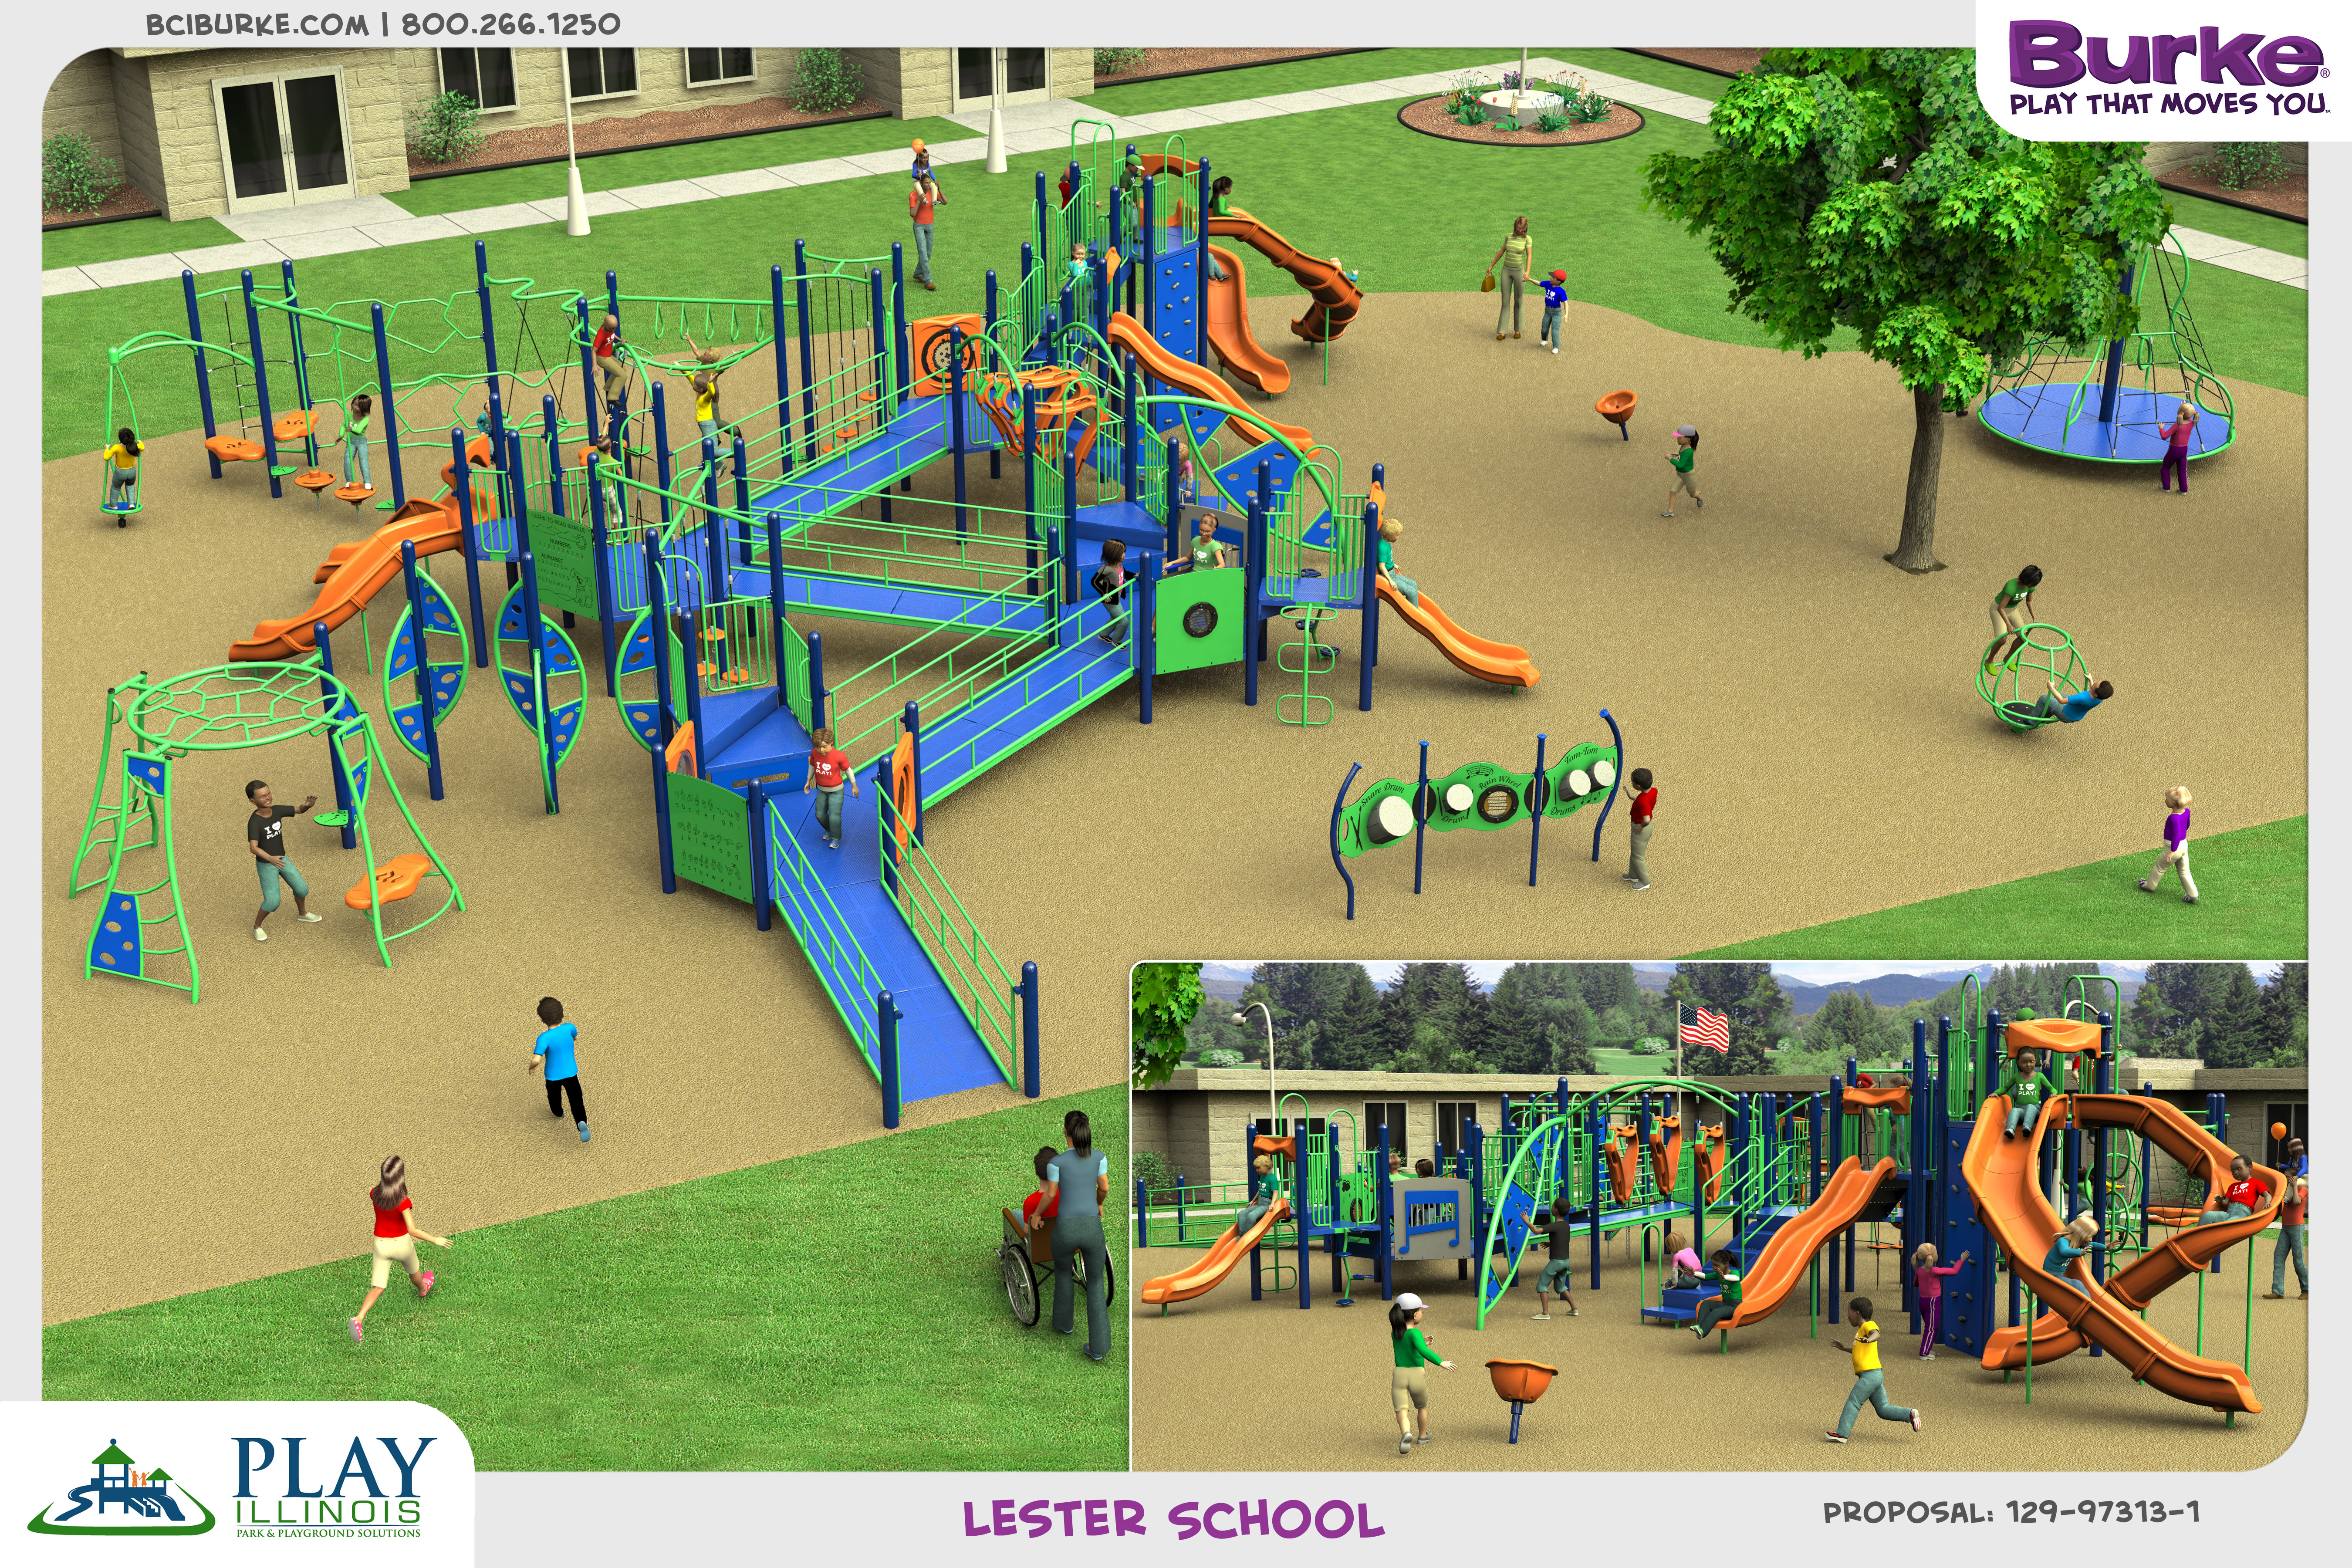 129-97313-1A_LesterSchool dream build play experience accessible playgrounds